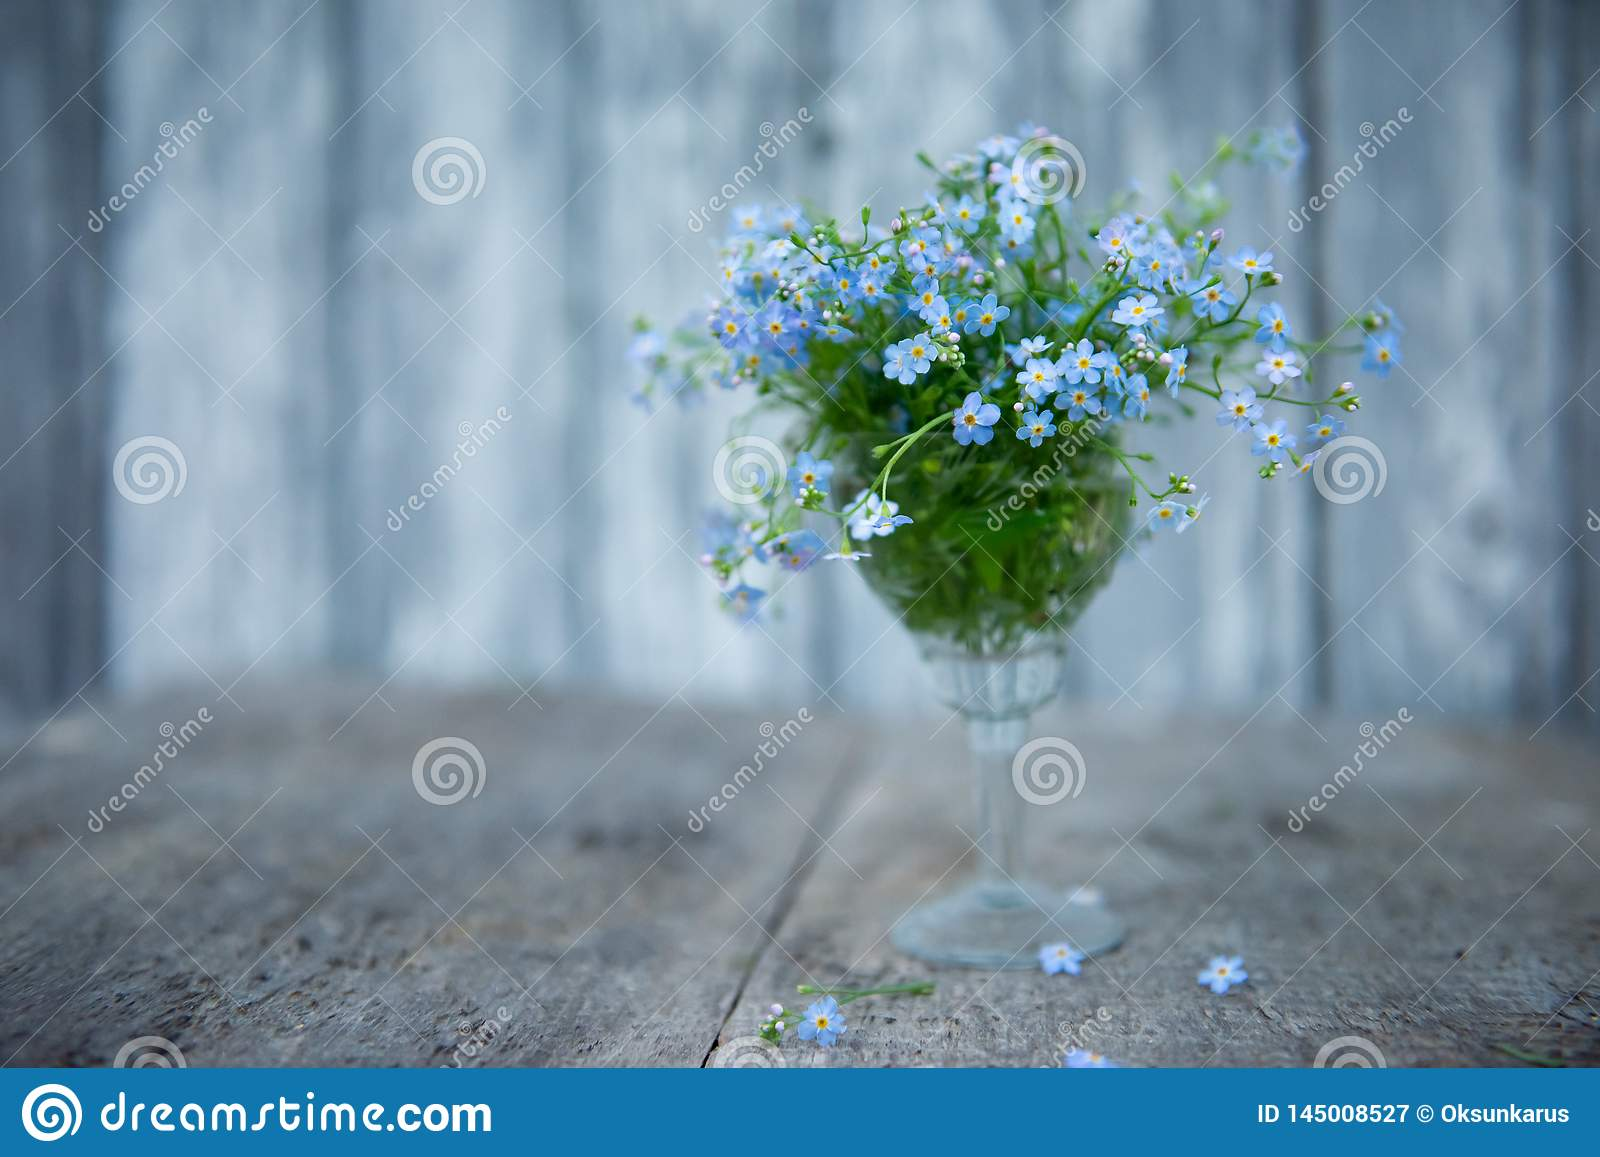 A small bouquet of forget-me-nots in a crystal glass on a blurred background of boards painted with blue paint and a few flowers o